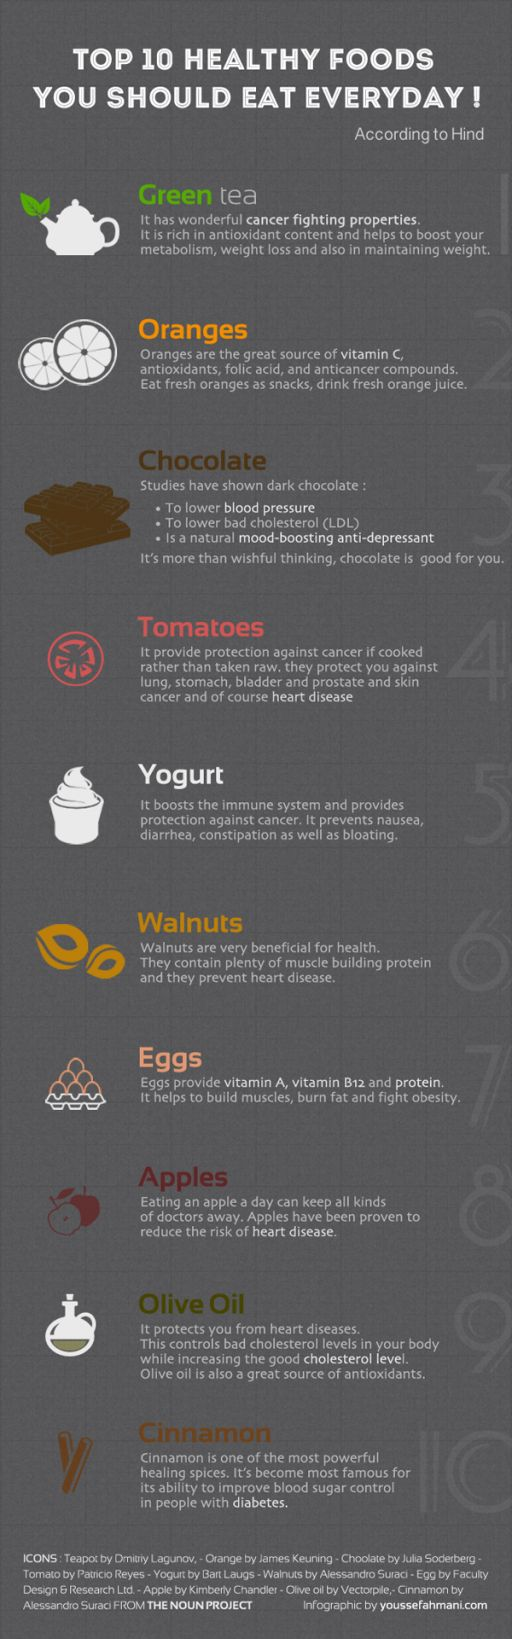 10 delicious and healthy foods to eat every day! Some of these I already do  some will def. go on the list!!